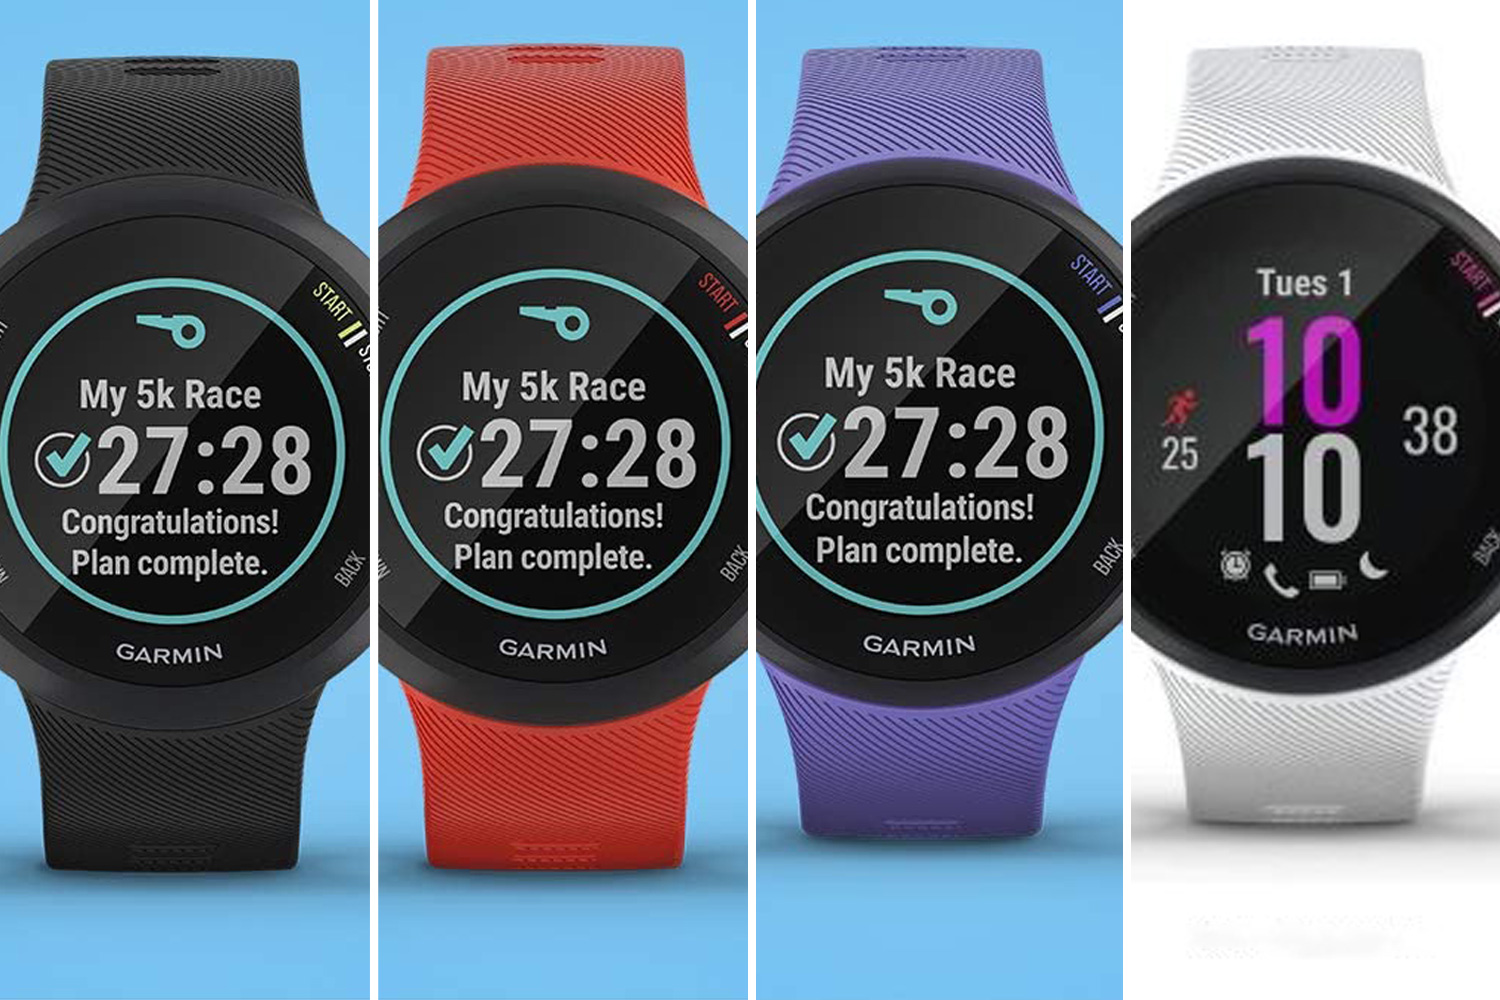 Garmin's Forerunner Running Watch comes in four colours